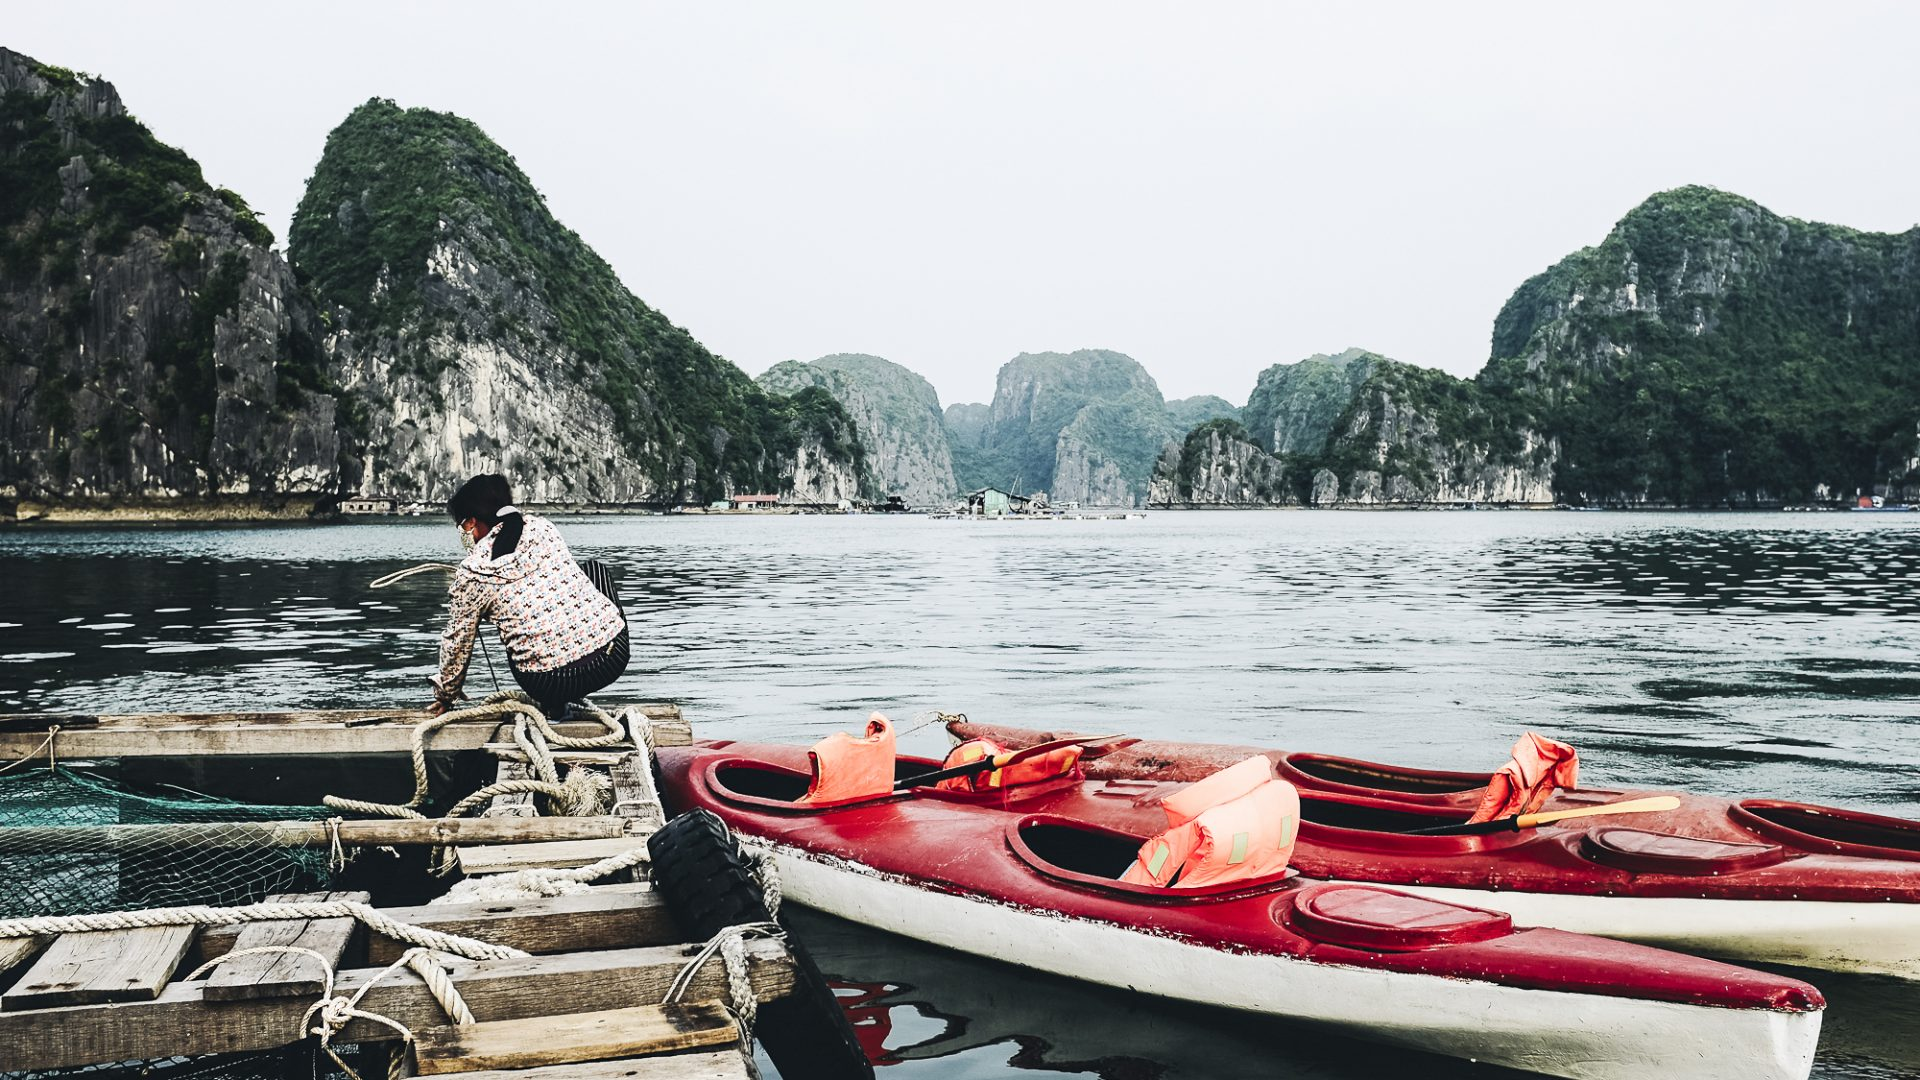 Preparing kayaks in Lan Ha Bay, Vietnam